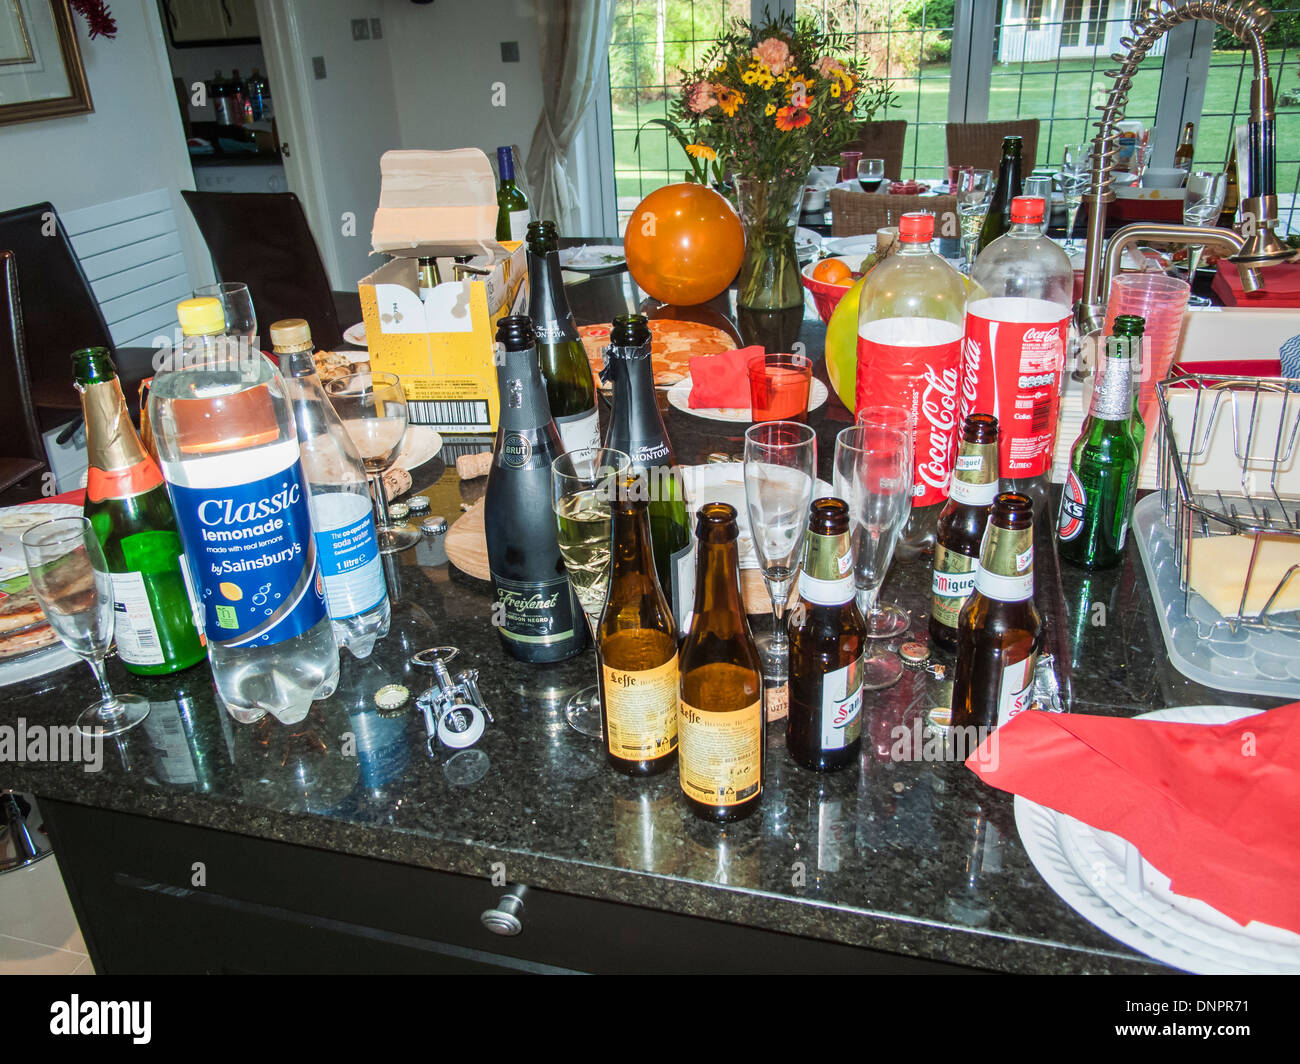 Messy, untidy kitchen after a party: empty wine, beer & drink glass bottles, plastic bottles, dirty paper plates, unwashed champagne glasses as trash - Stock Image